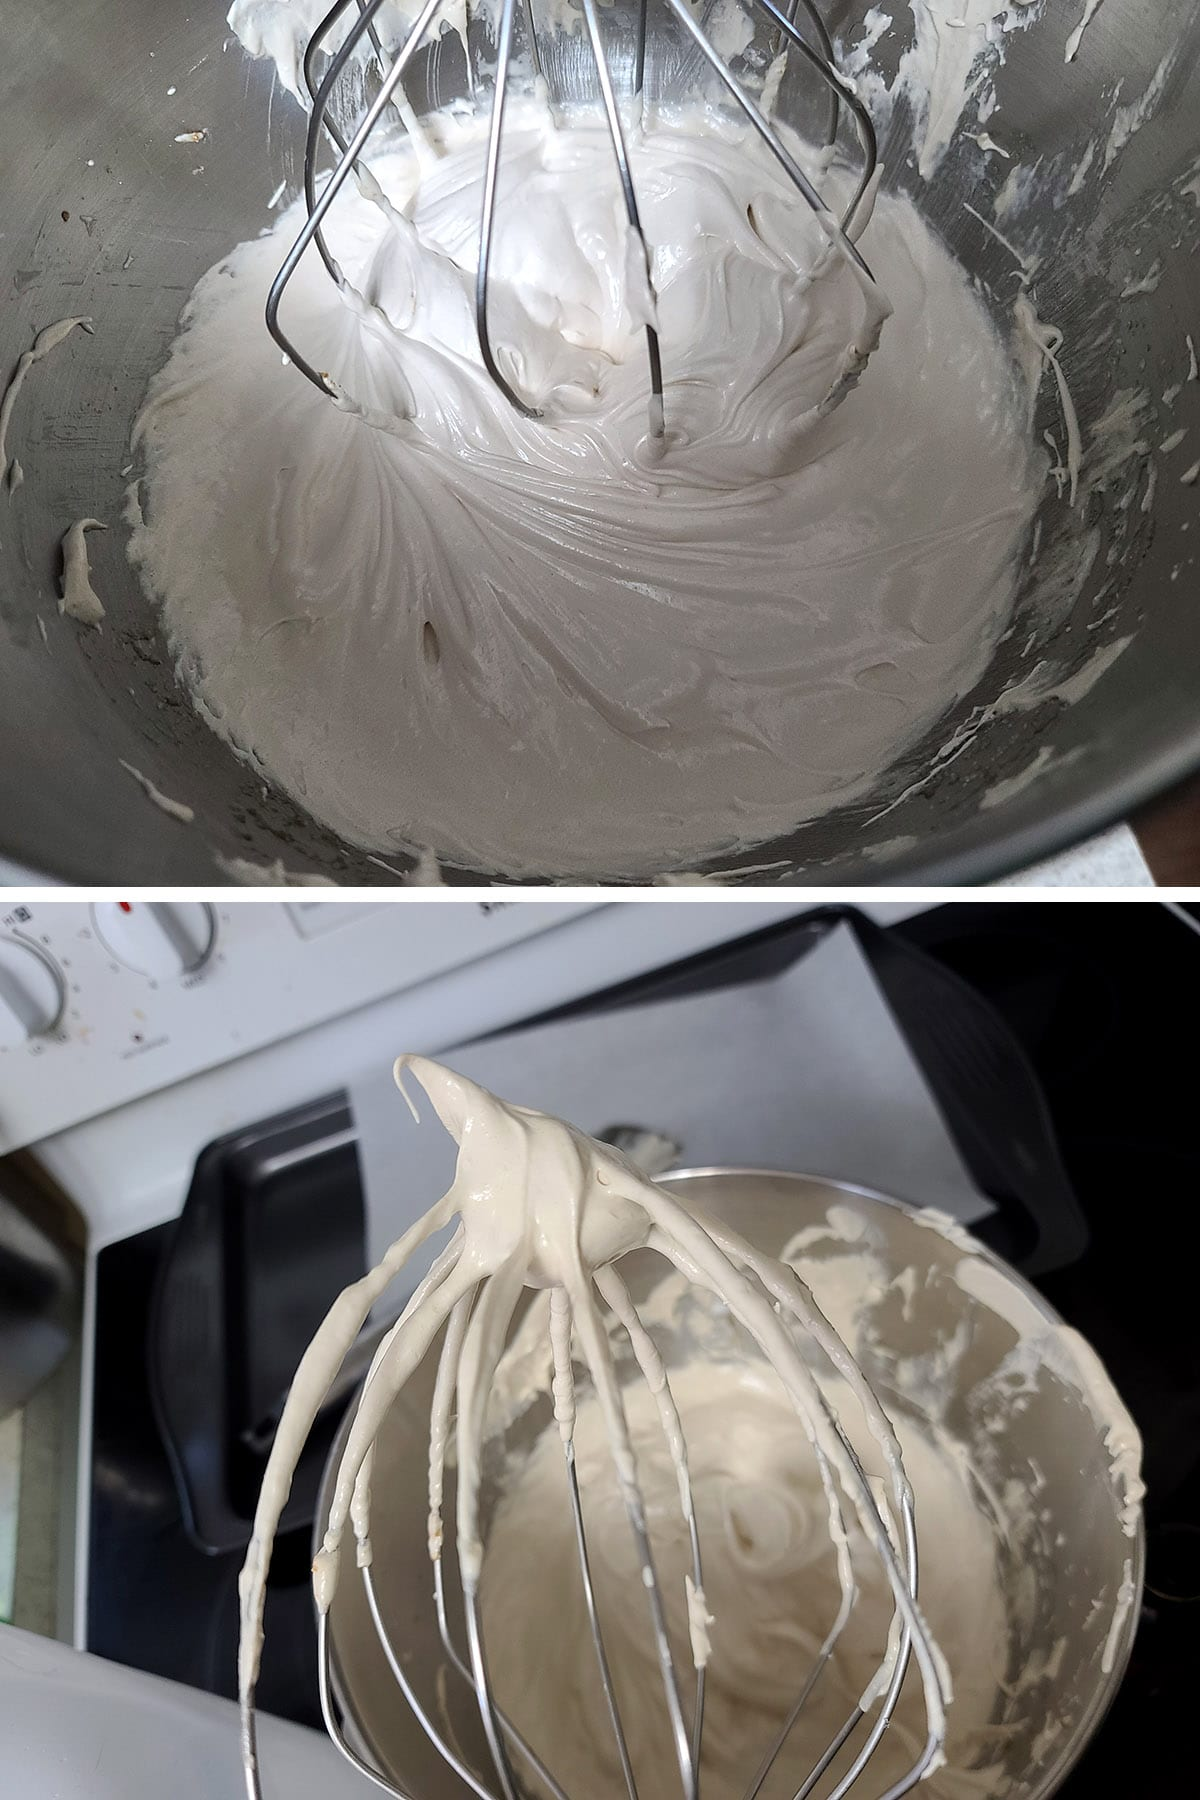 A pale ivory meringue being whipped in a stand mixer, and the whisk being held up to show the stiff peak.